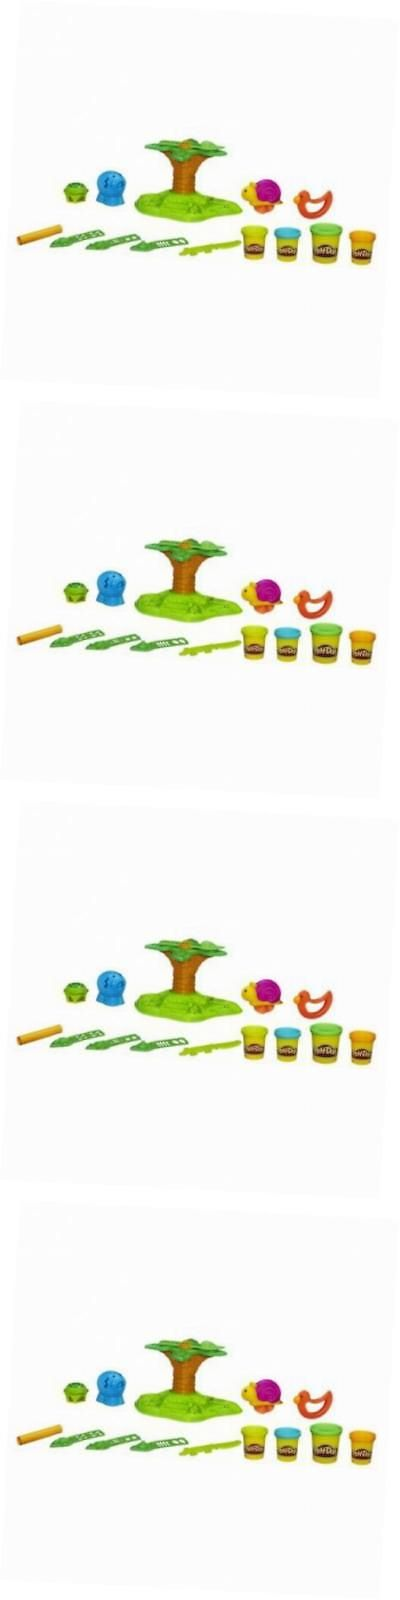 Play-Doh Modeling Clay 11740: Play-Doh, Animal Activities, Jungle Pets Set -> BUY IT NOW ONLY: $40.3 on eBay!